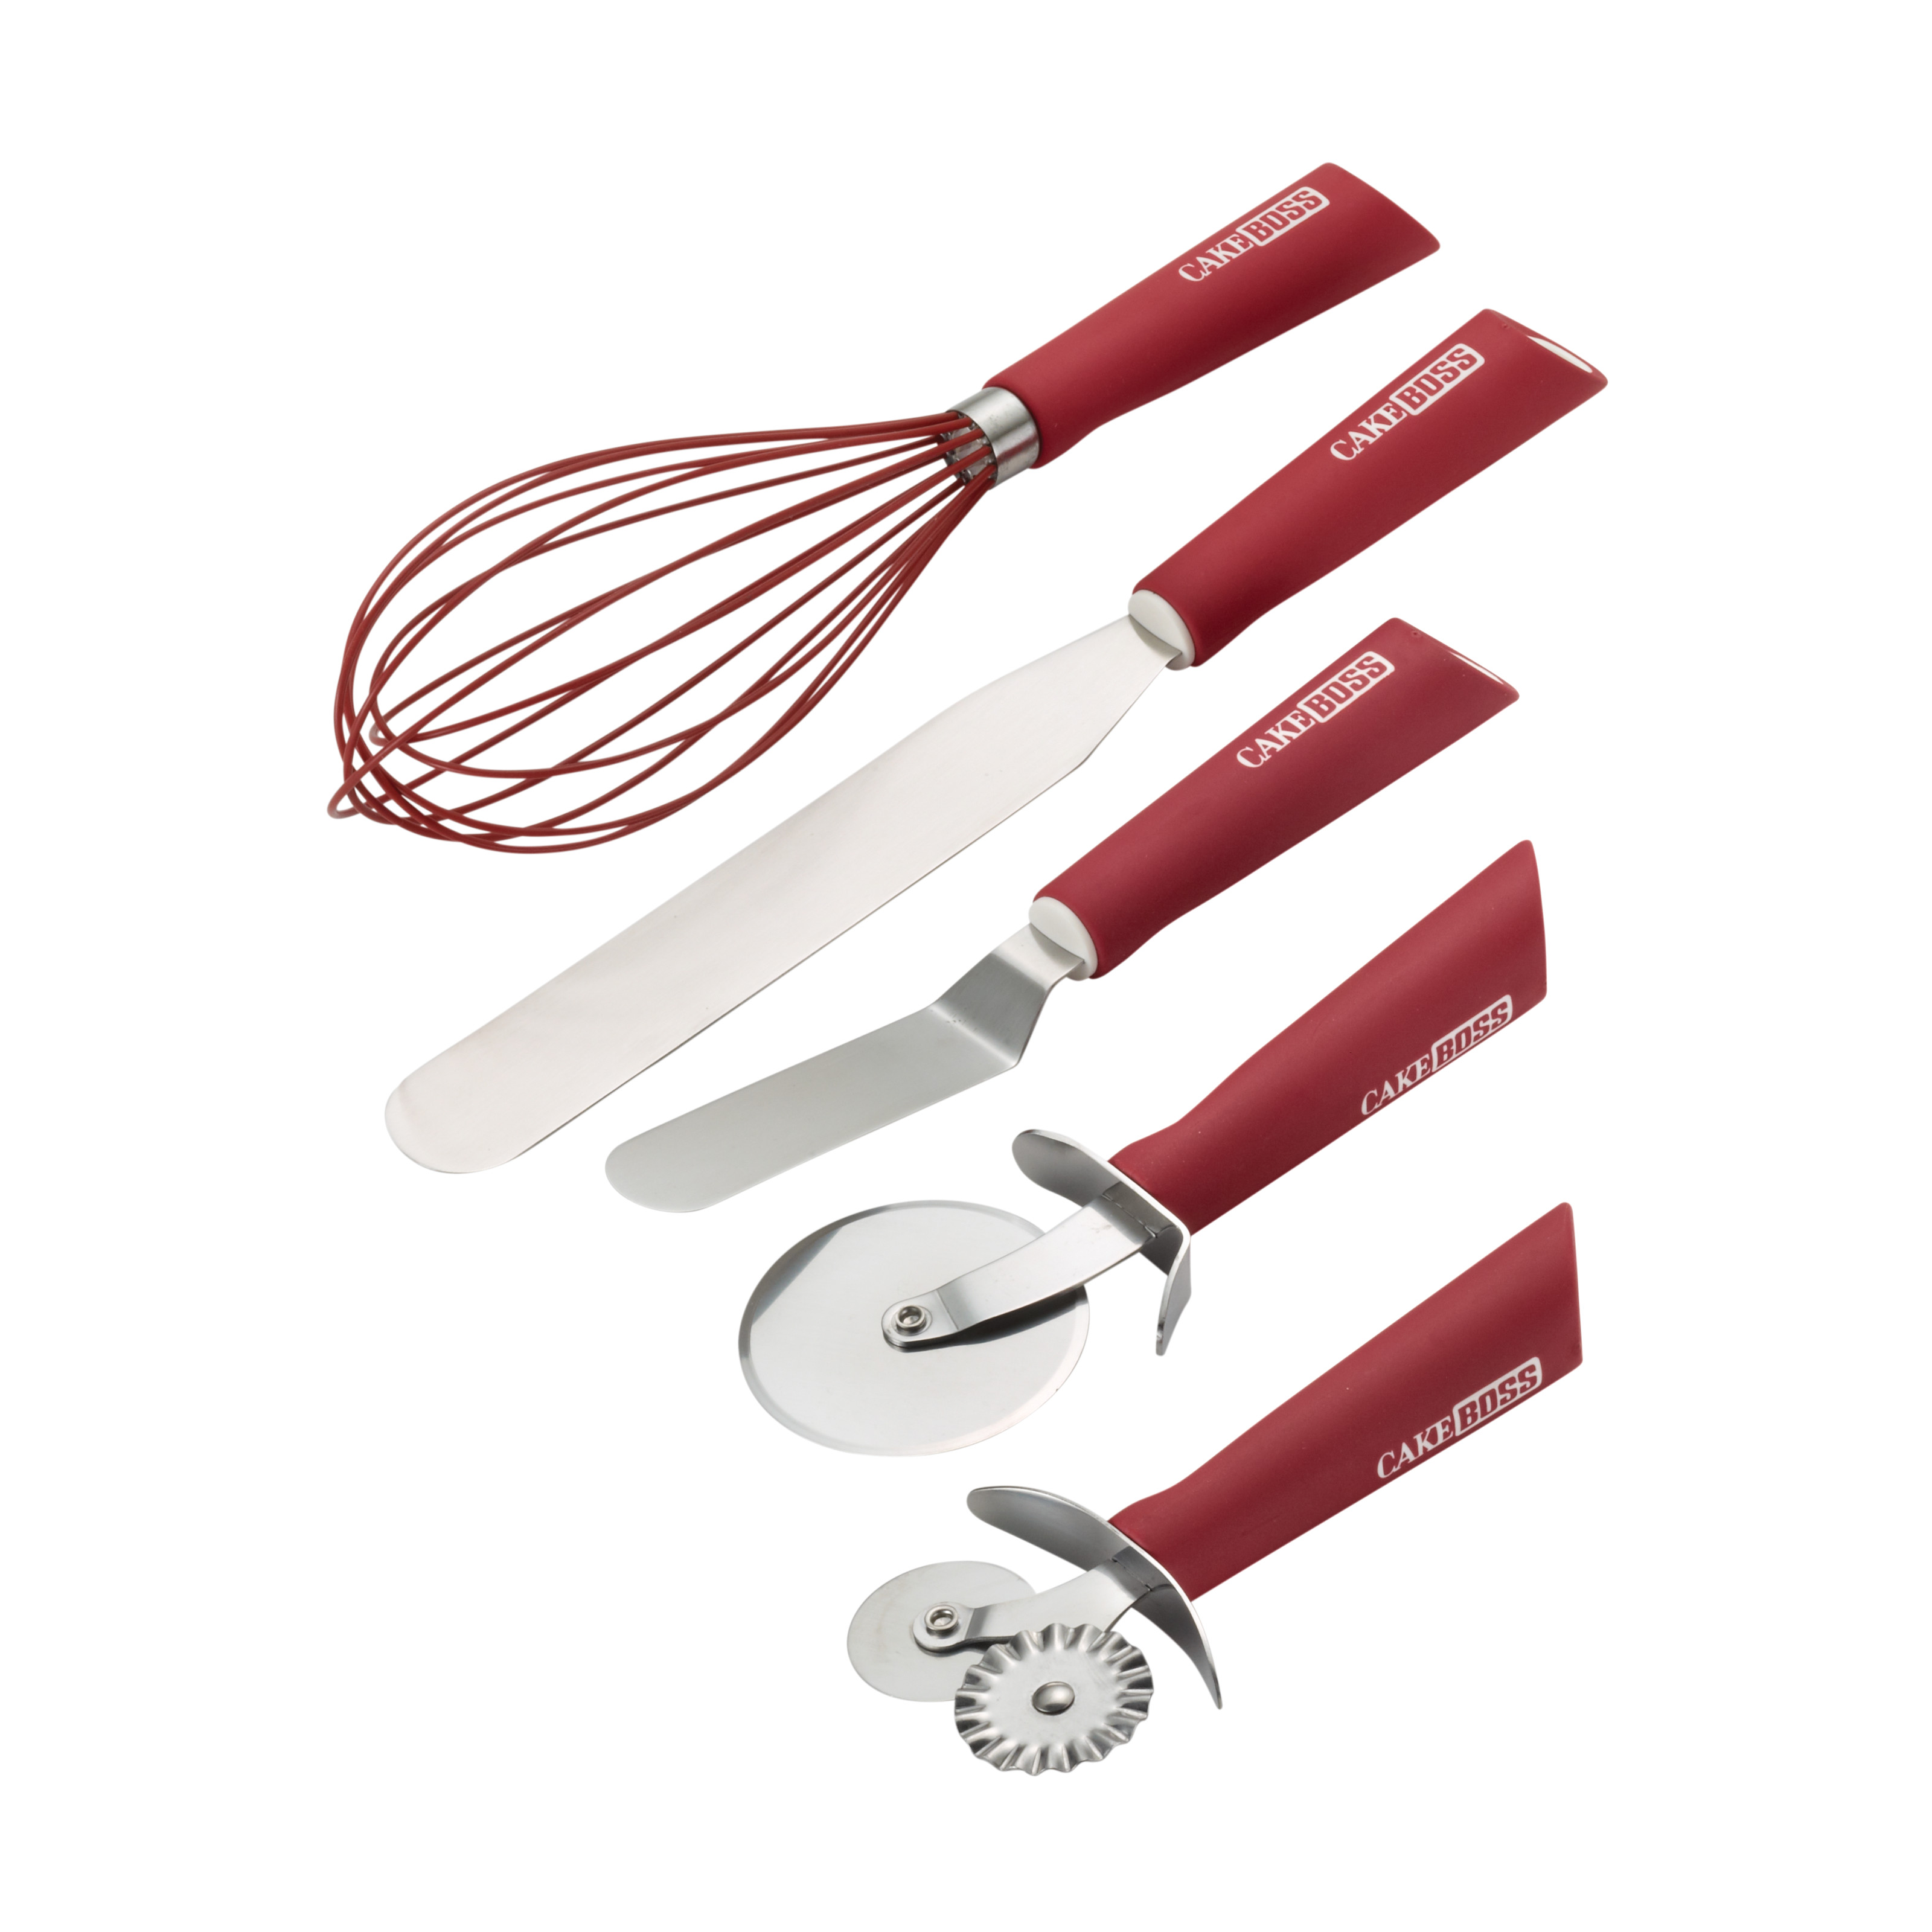 Cake Boss Stainless Steel Tools and Gadgets 5-Piece Baking and Decorating Tool Set, Red